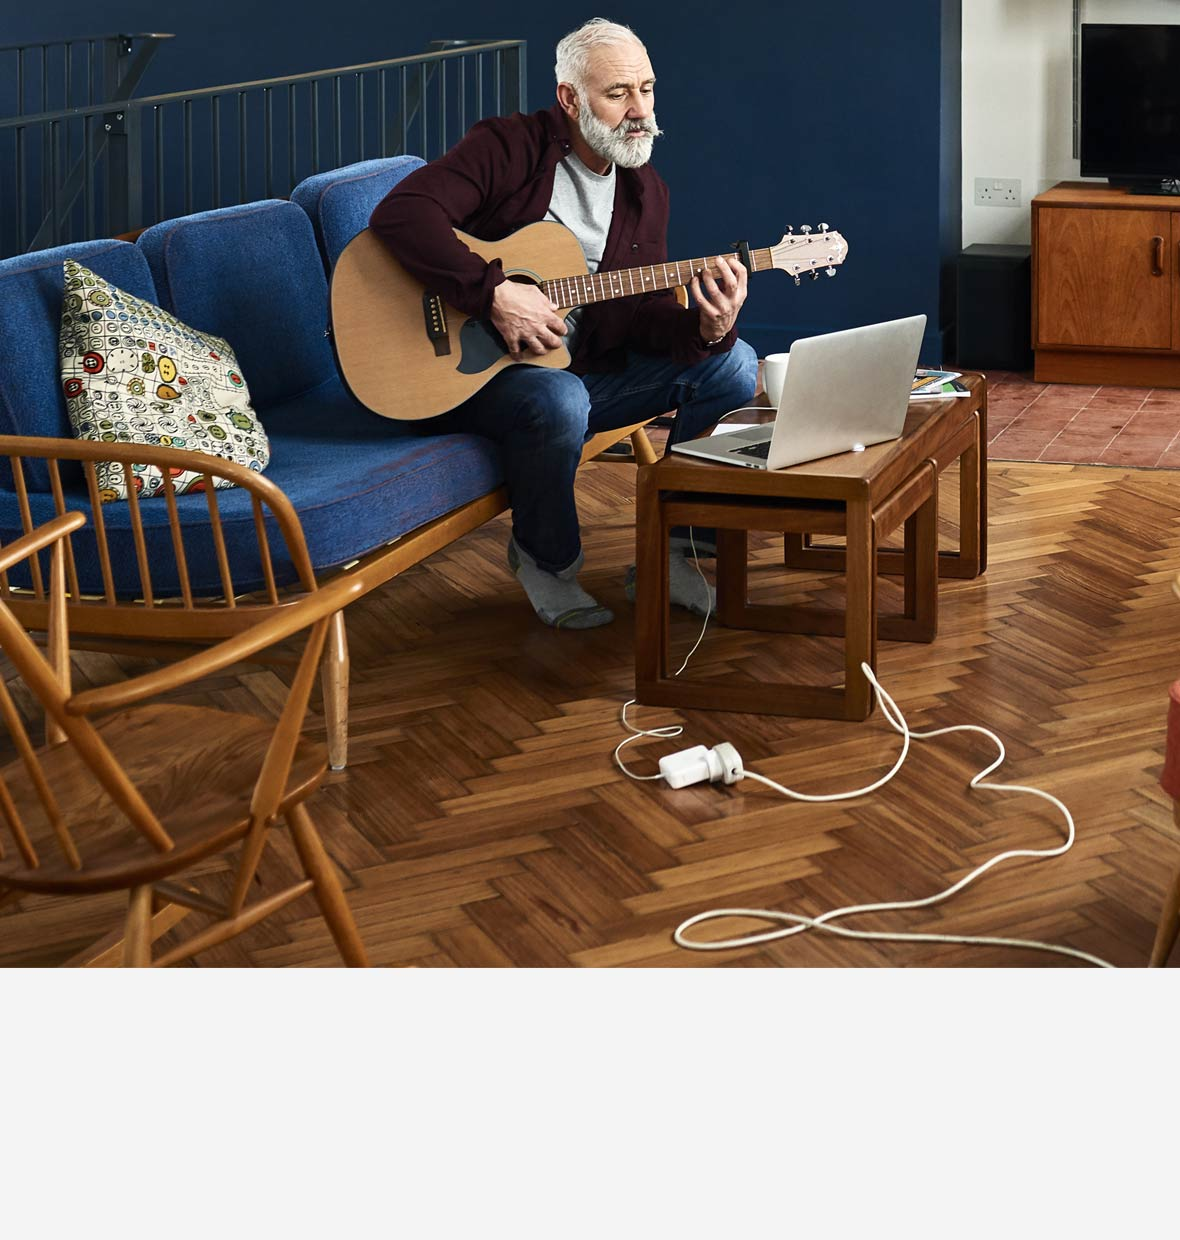 Man playing guitar in his lounge